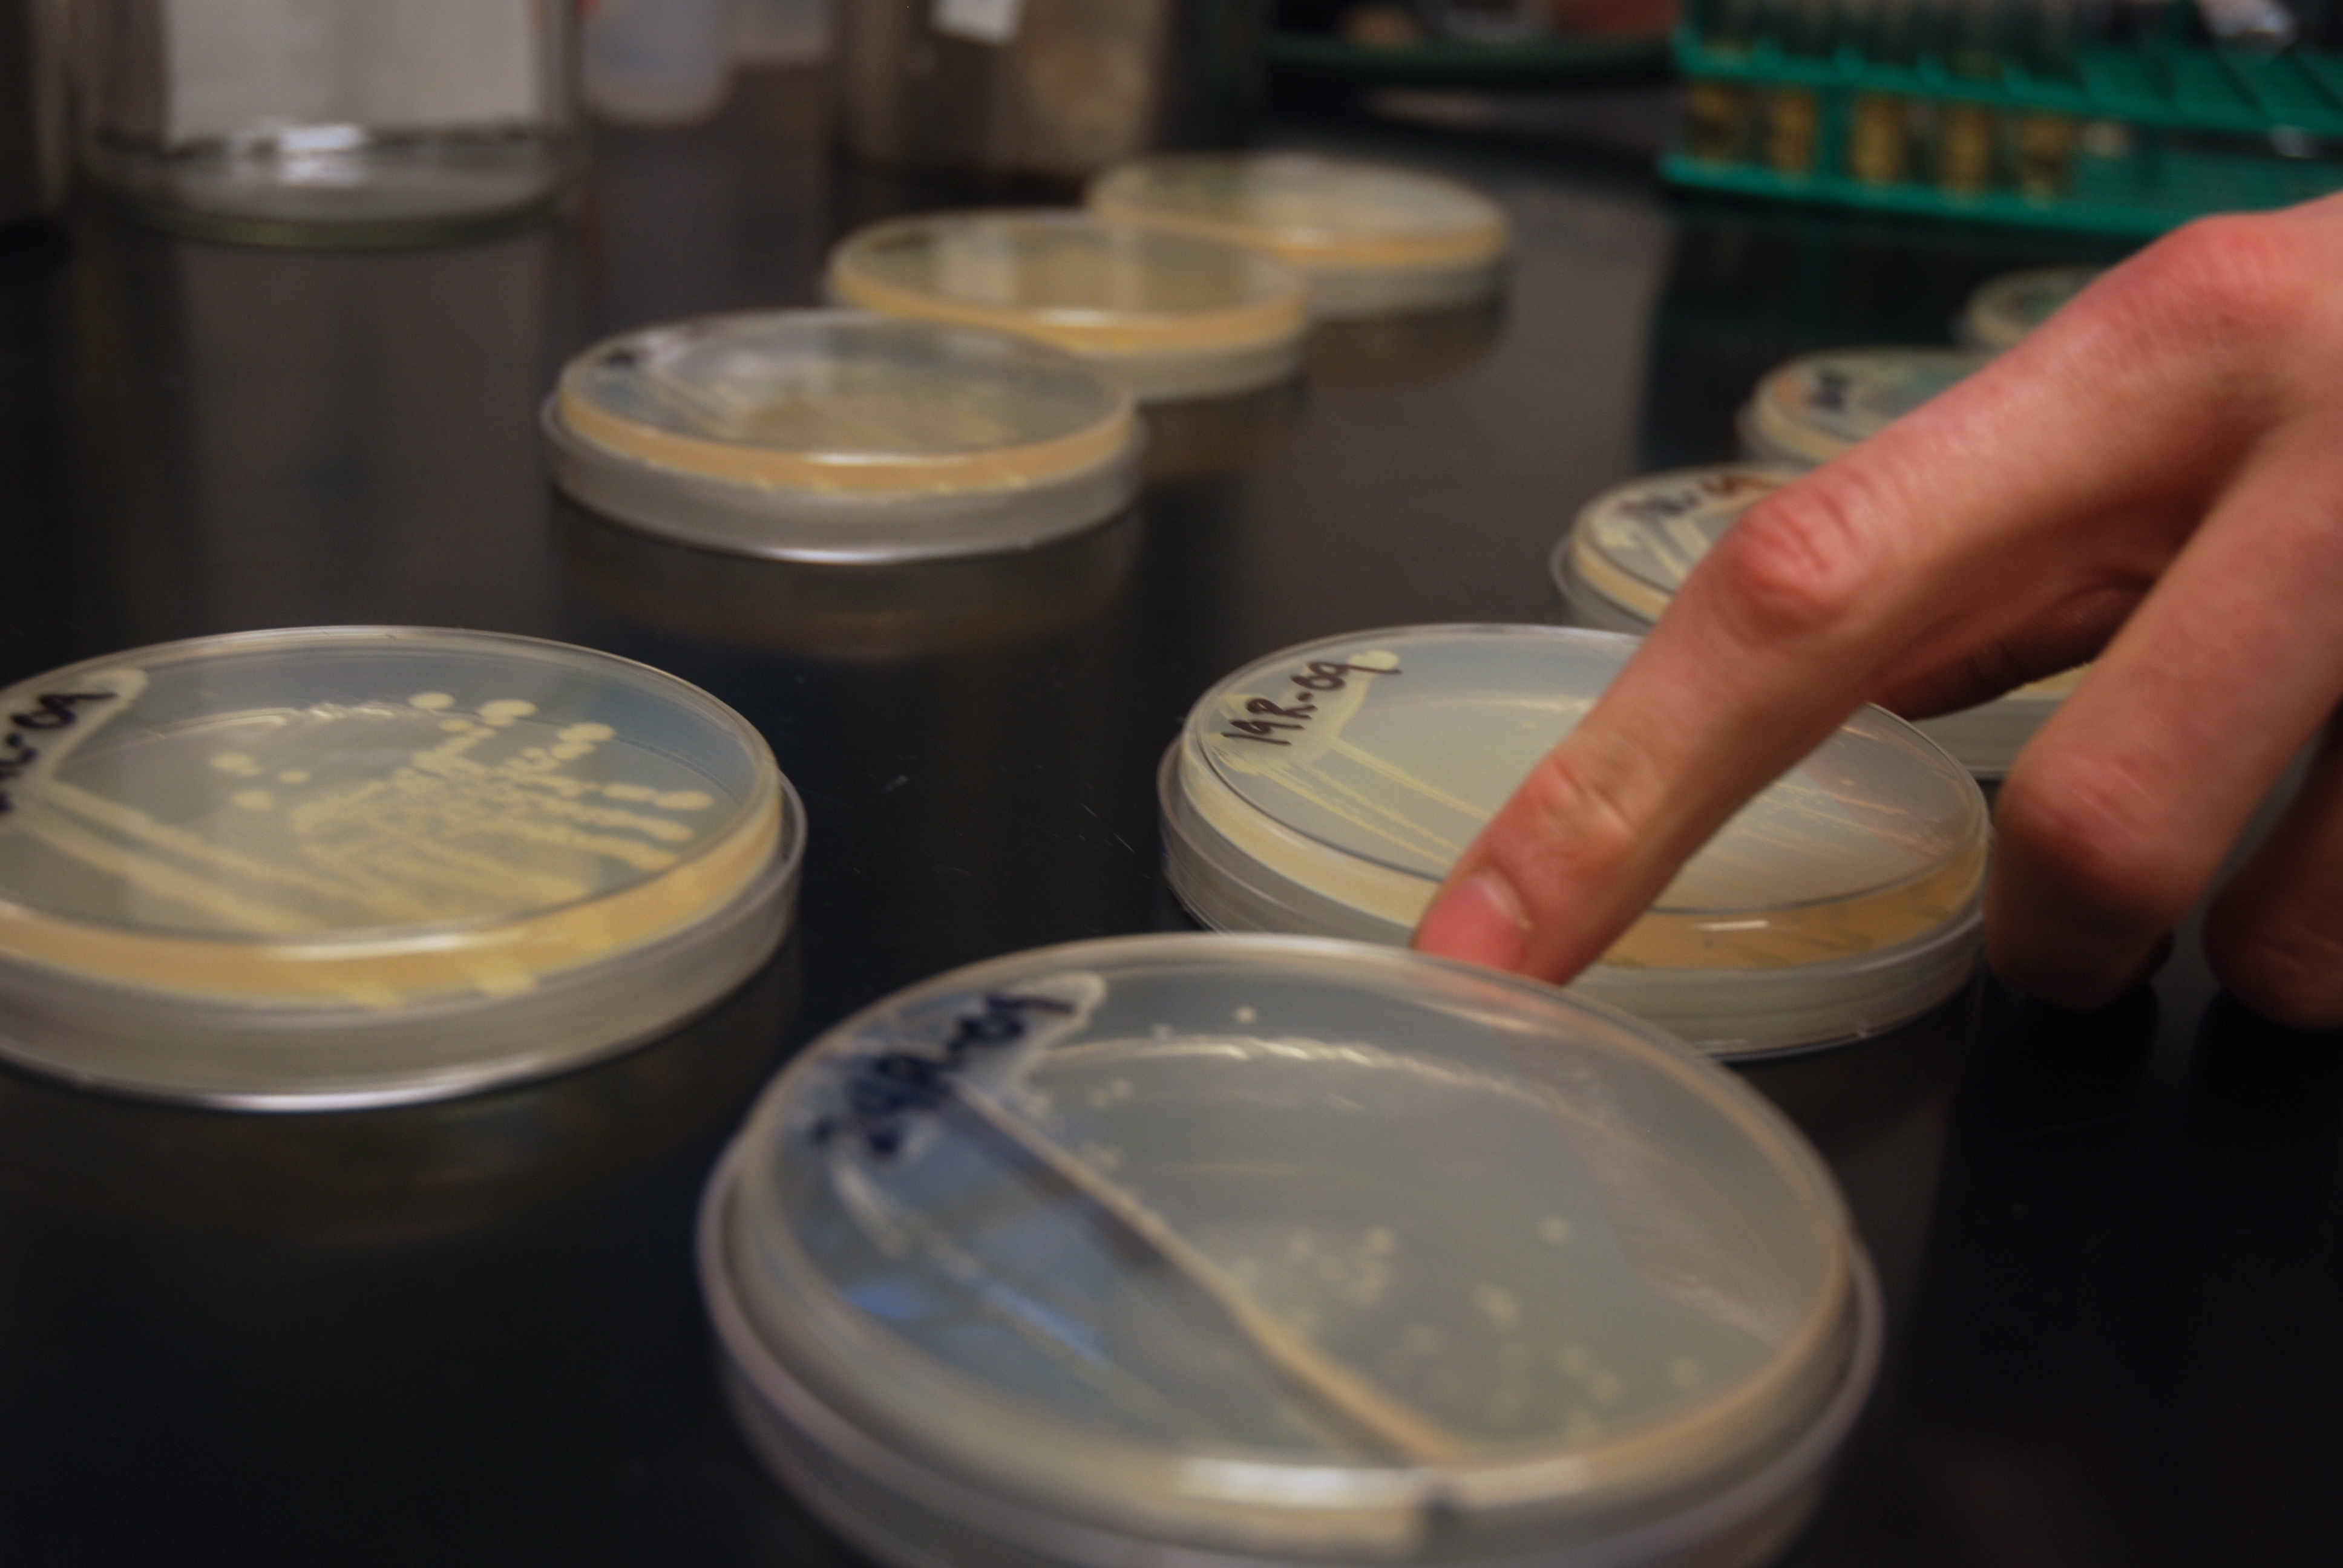 Approximately one-hundred different isolates have been tested during the study.